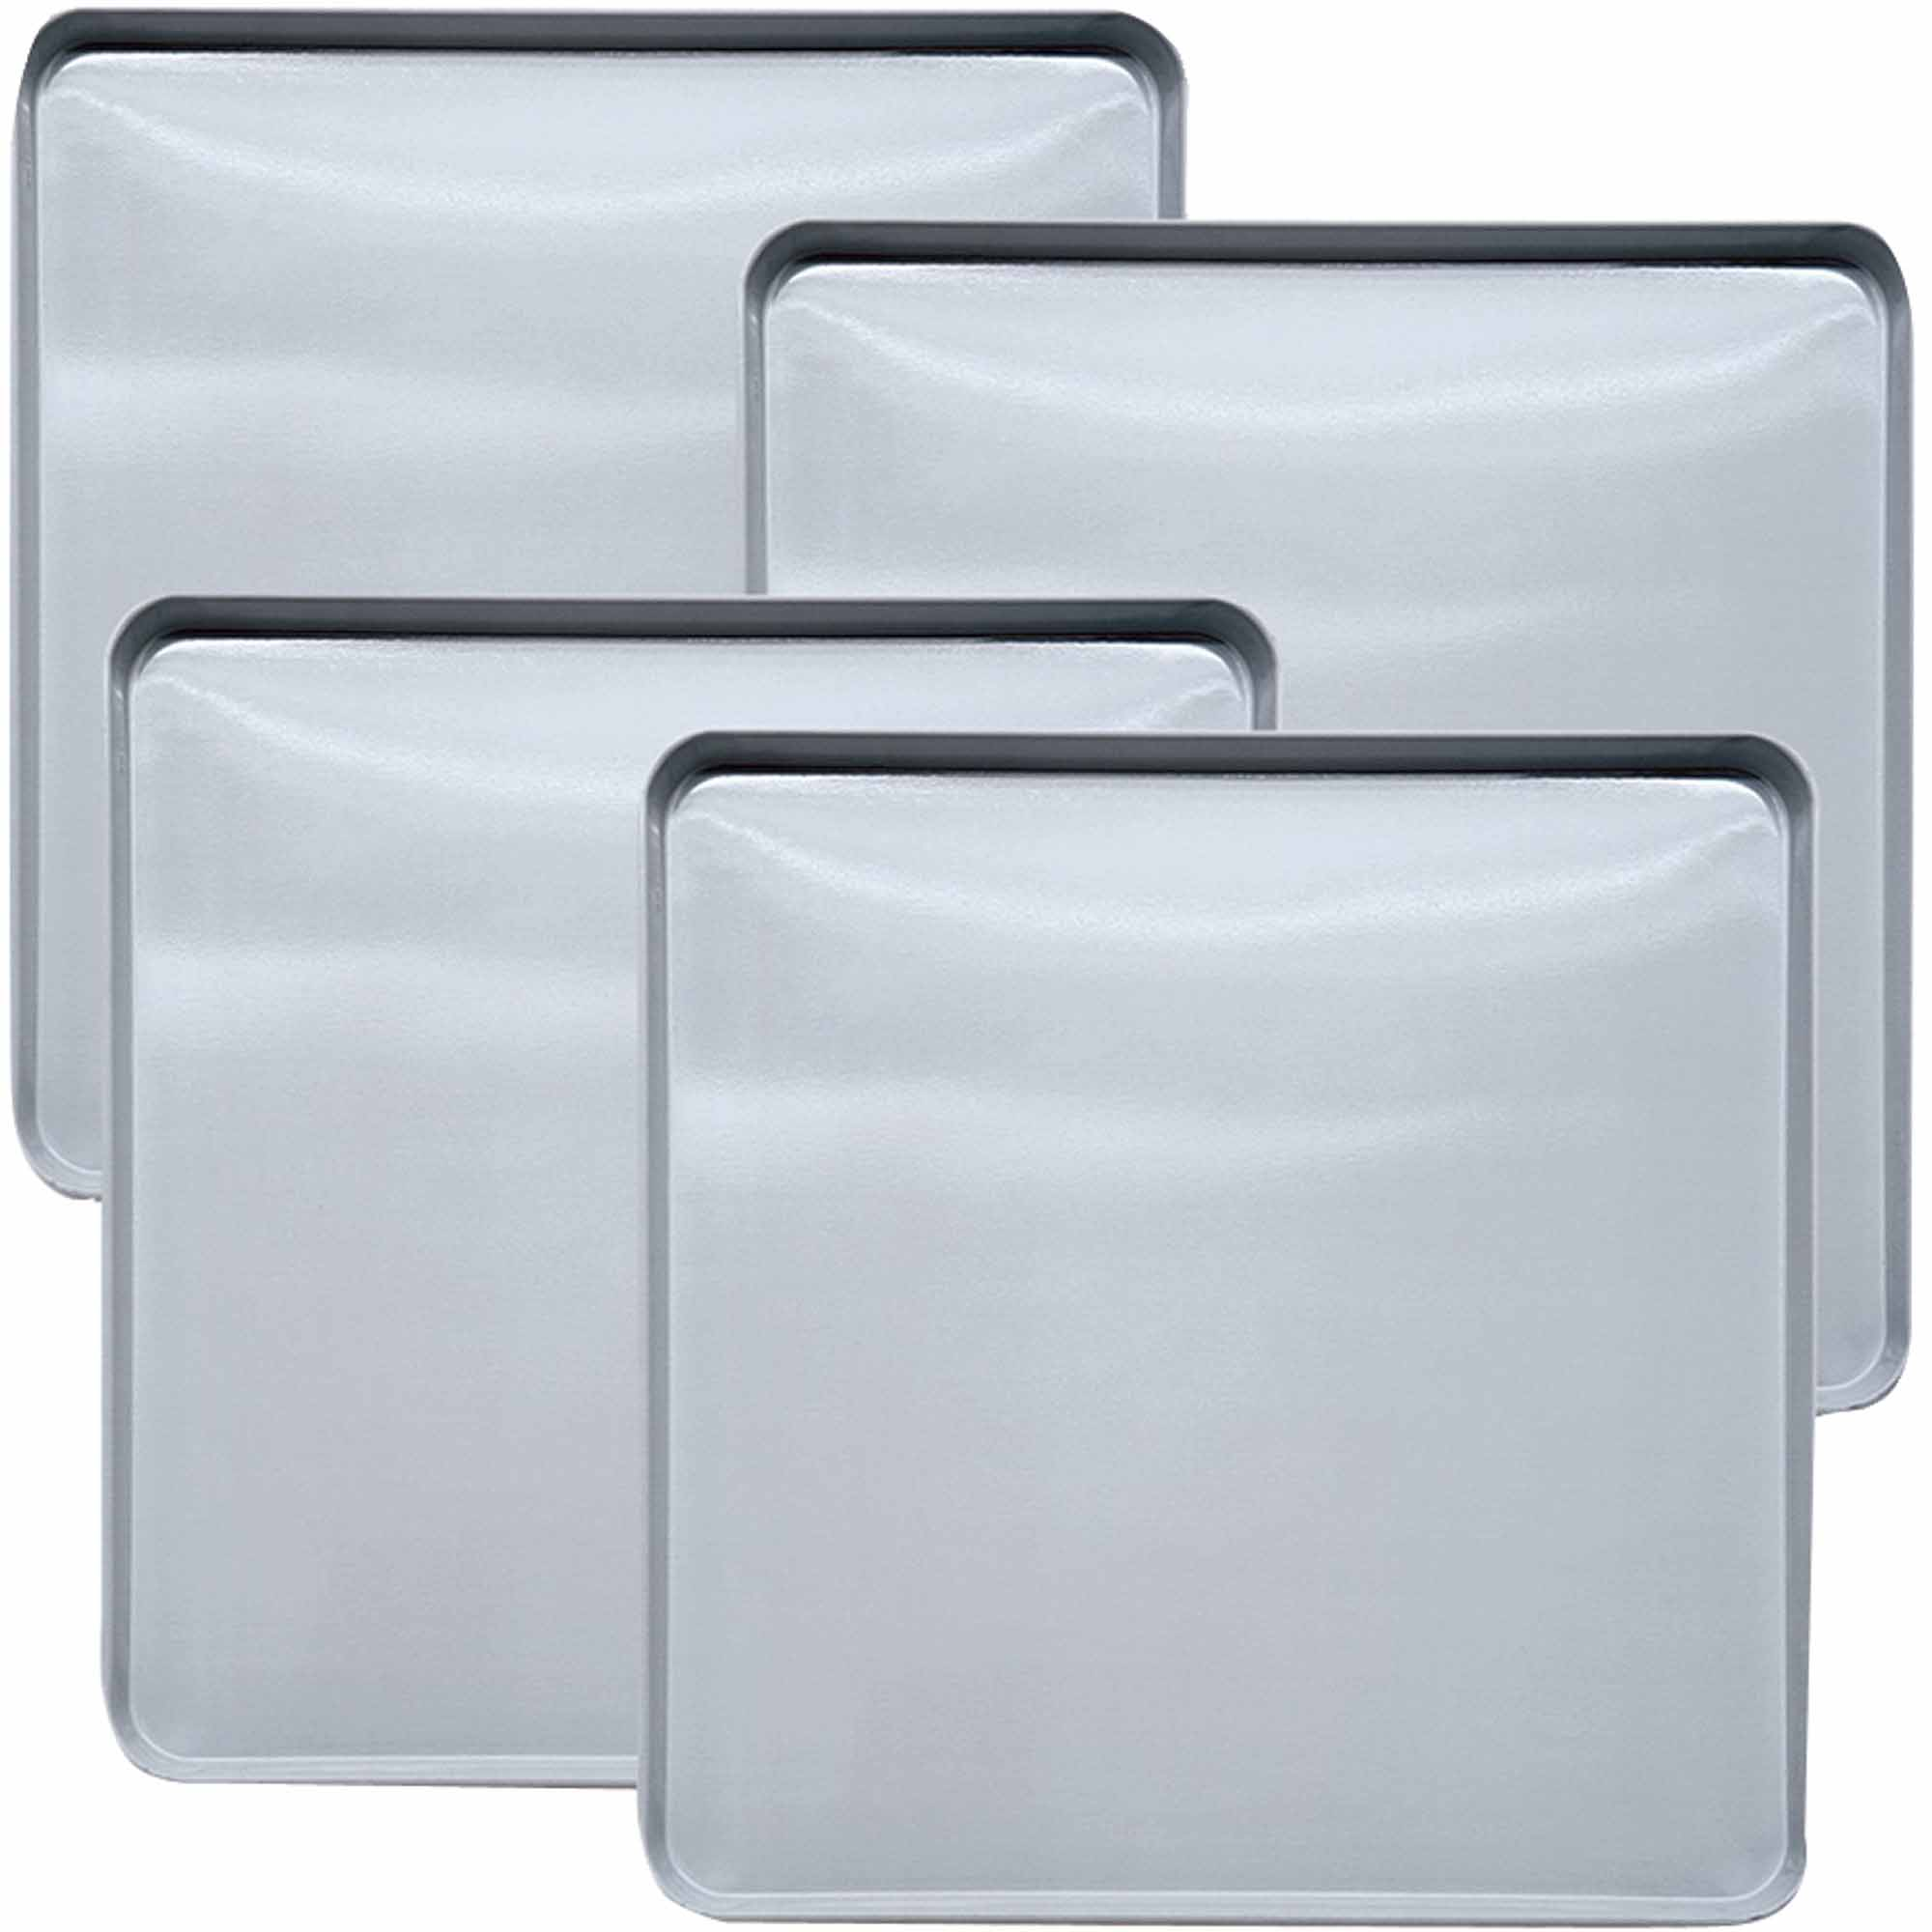 Range Kleen Square Stainless Steel Burner Kovers, 4pk